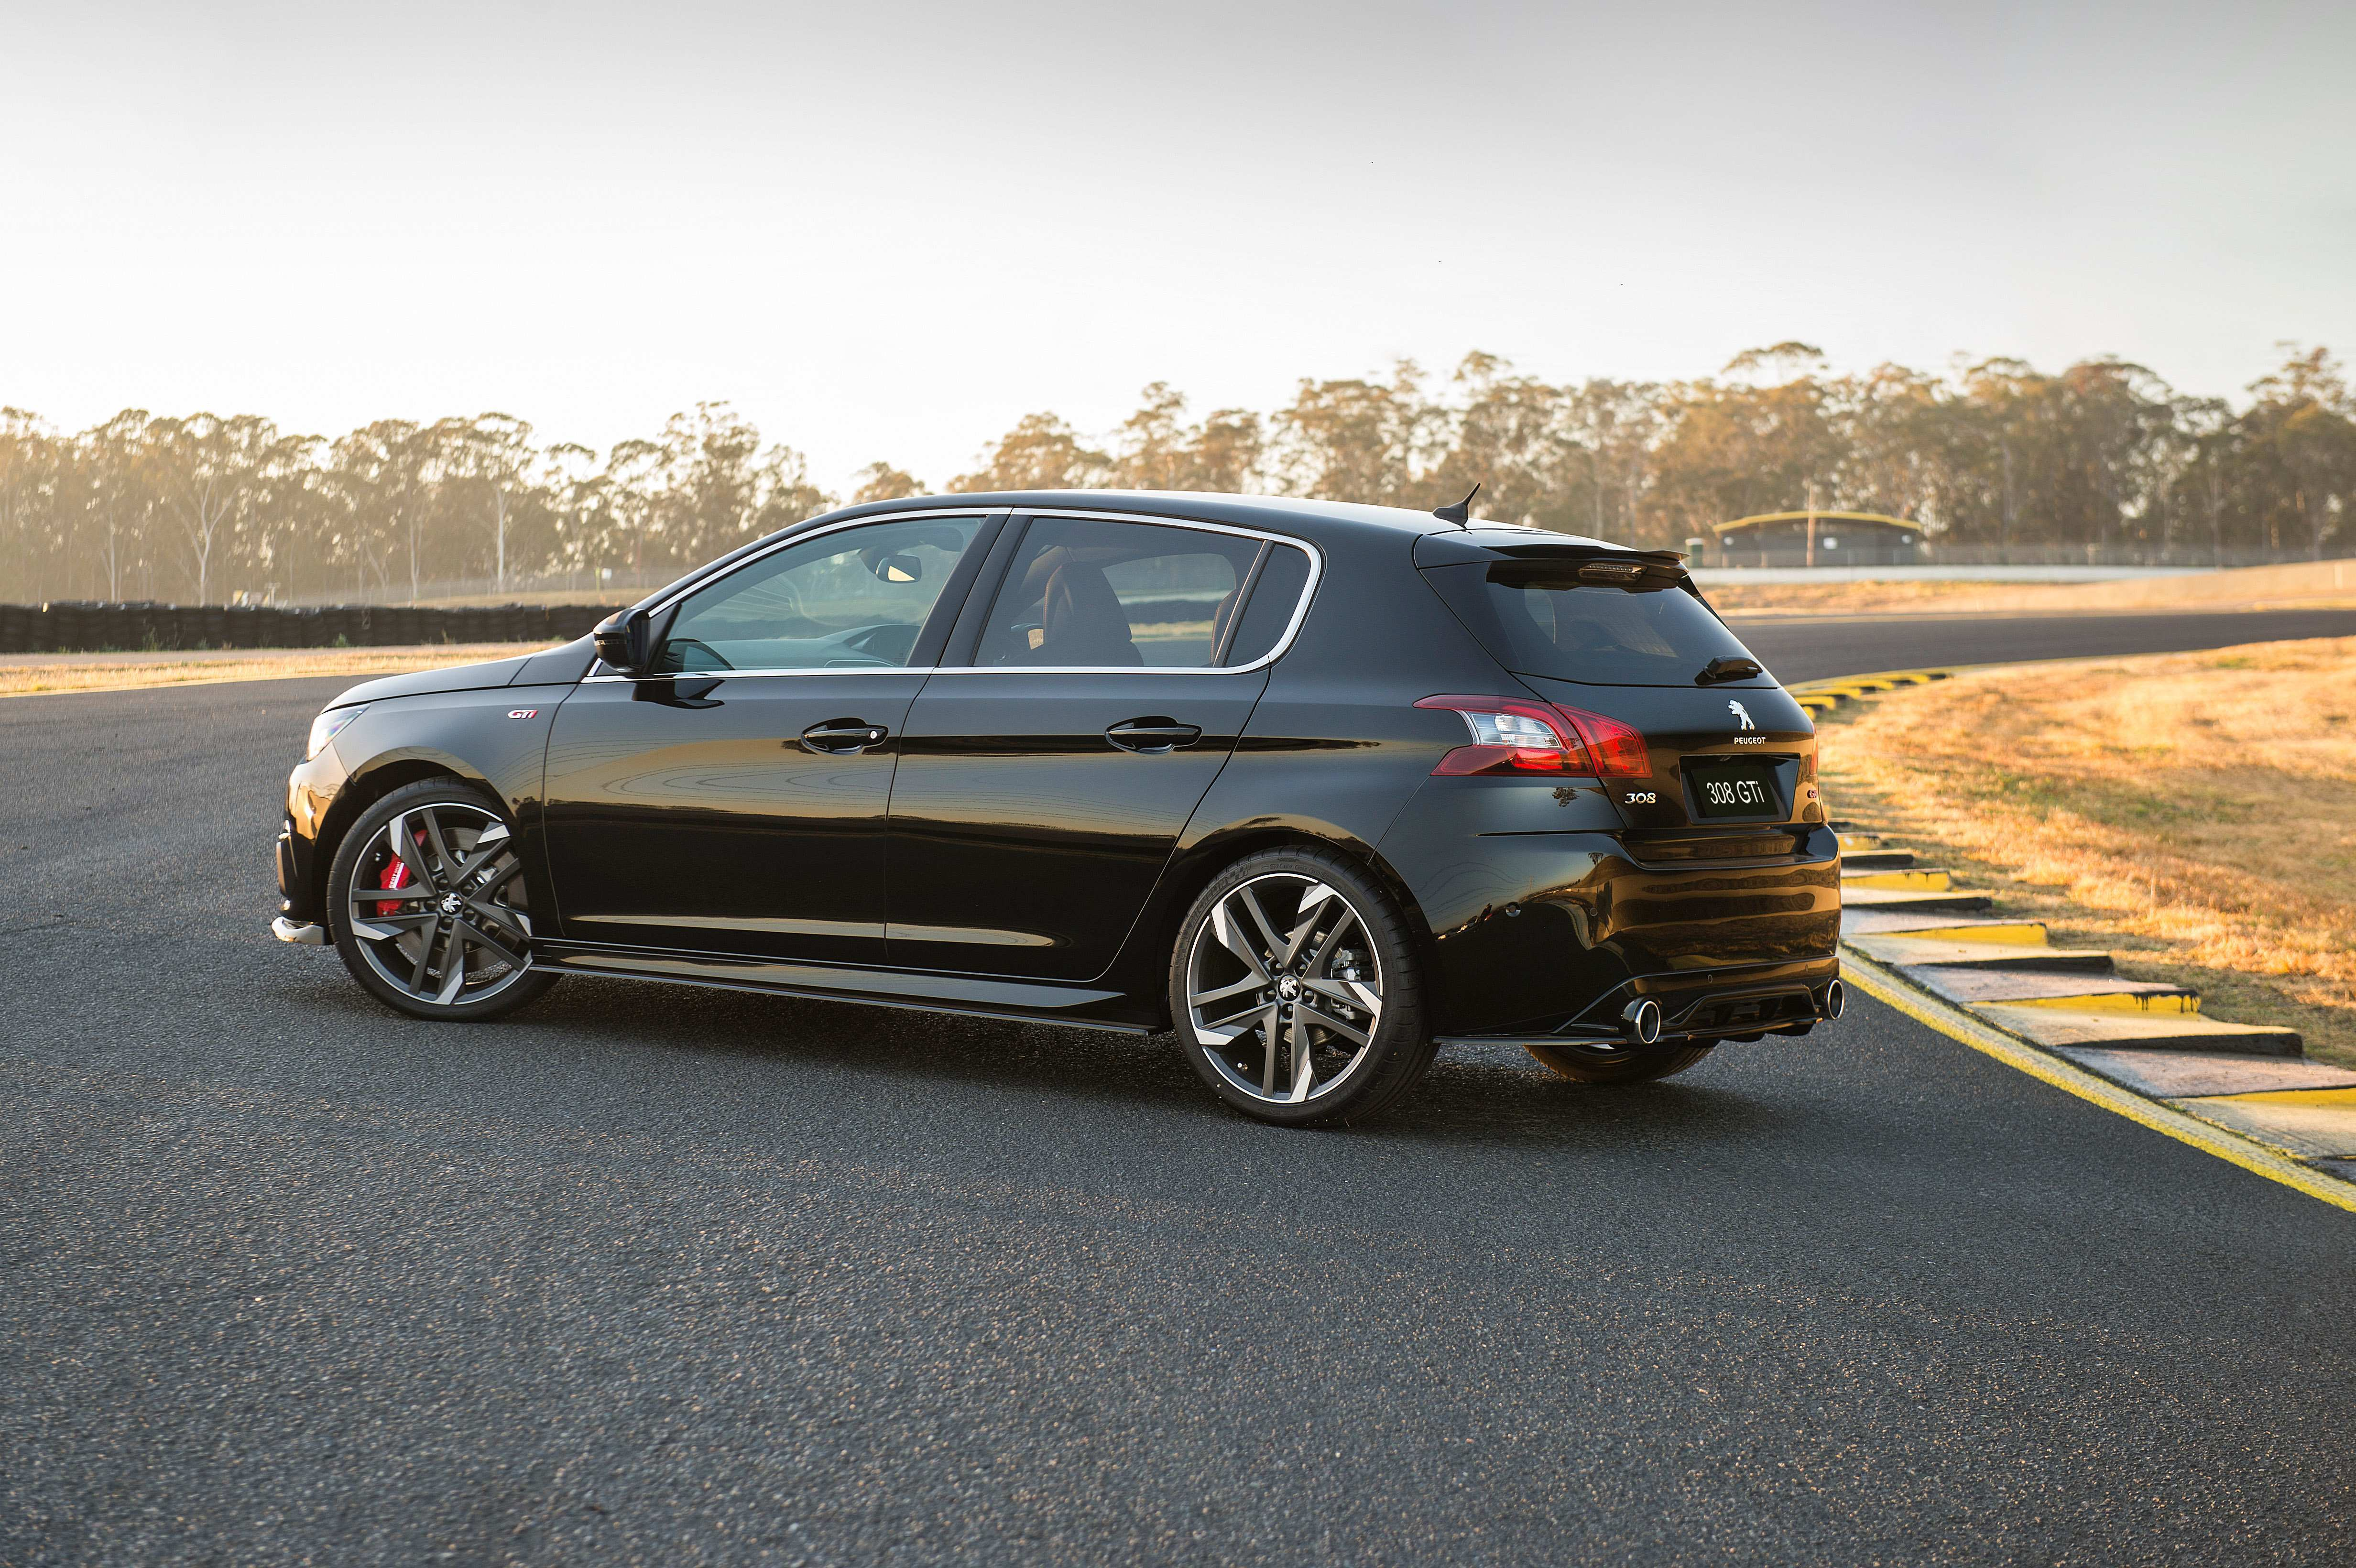 50 New 2019 Peugeot 308 Review And Release Date